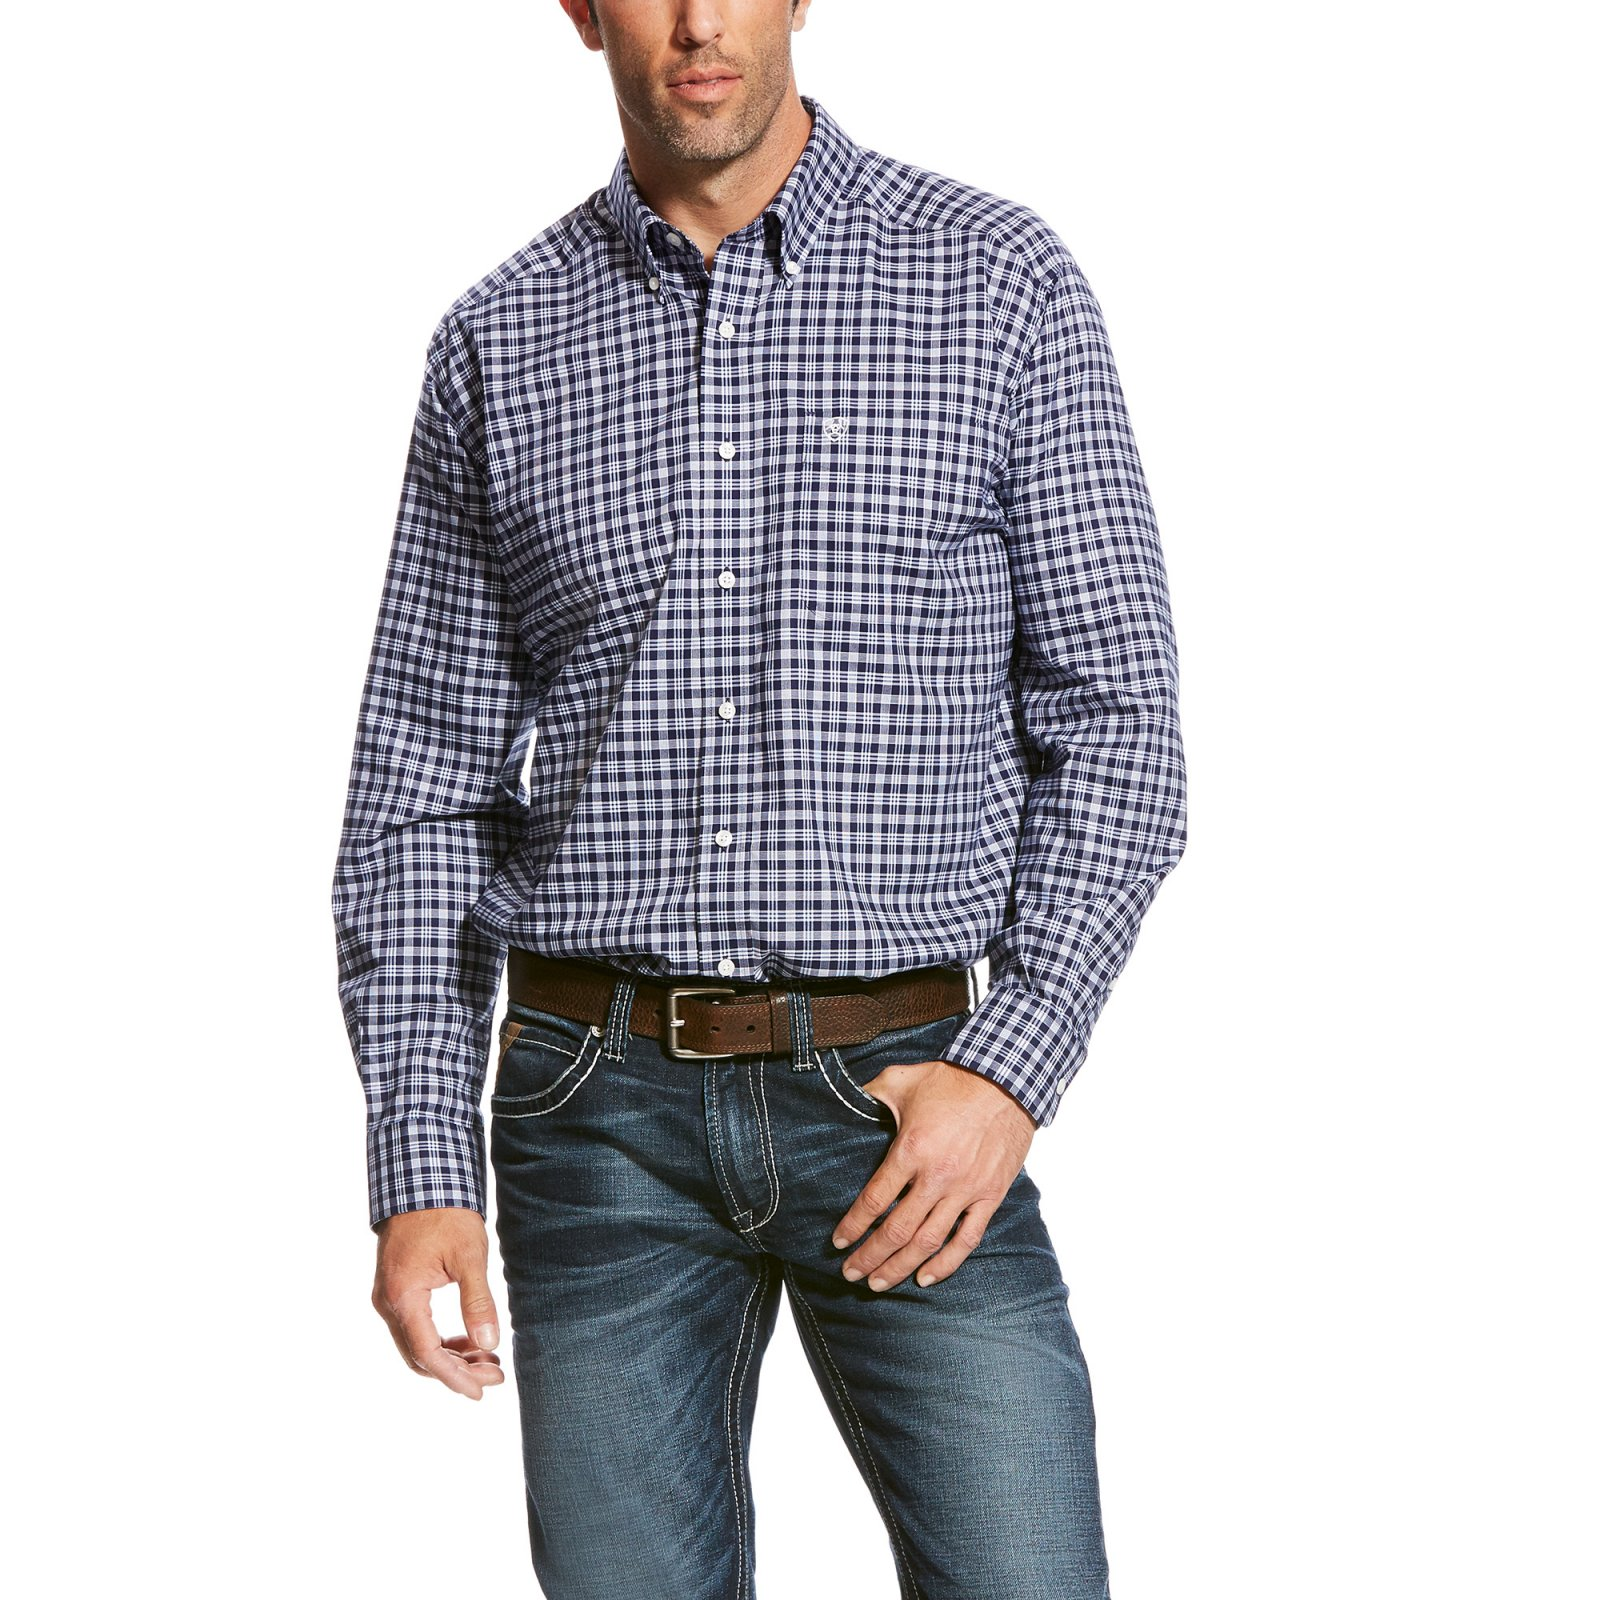 Men's Wrinnkle Free Quadri Plaid Long Sleeve Woven from Ariat